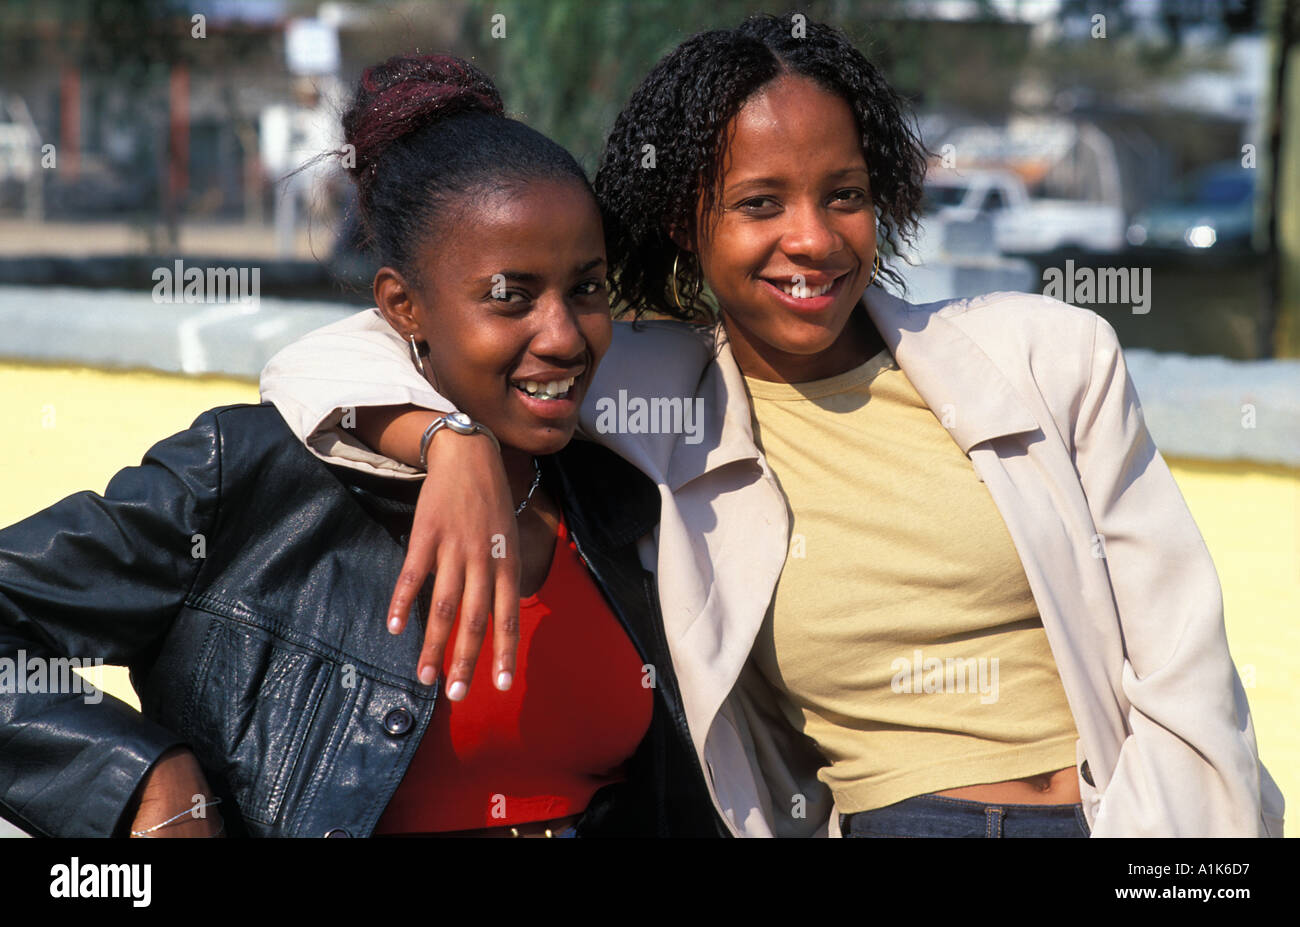 Friendly local girls pose for a photo Maherero Day Celebrations are is held in Okahandja in August each year Namibia - Stock Image